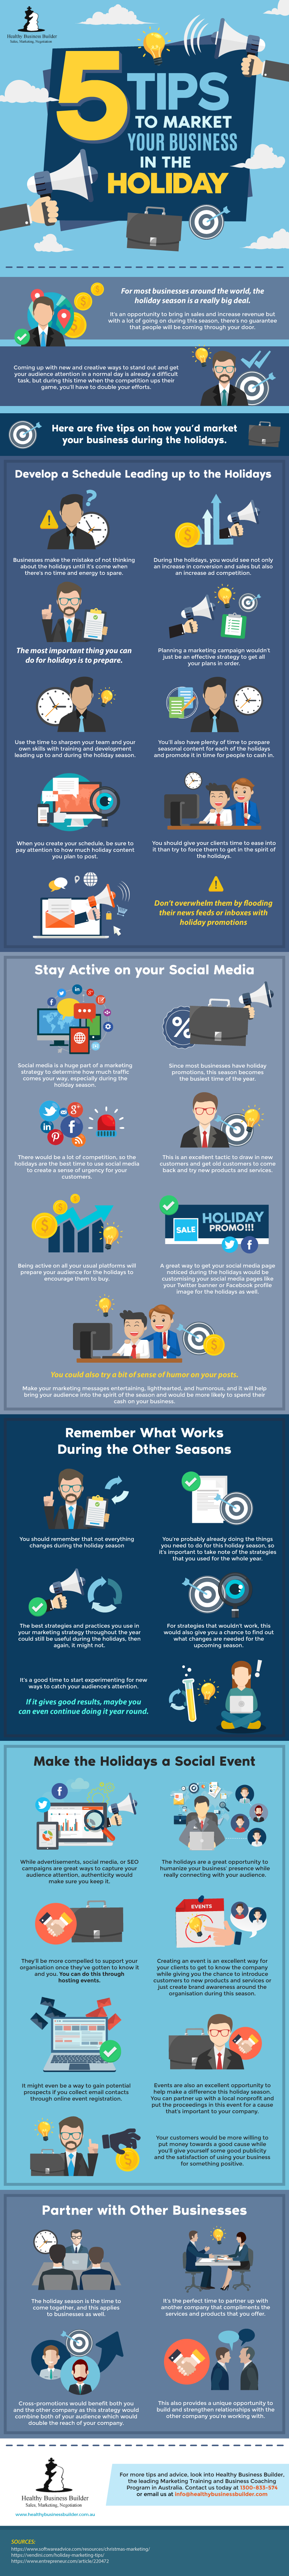 5 Tips to Market your Business in the Holiday